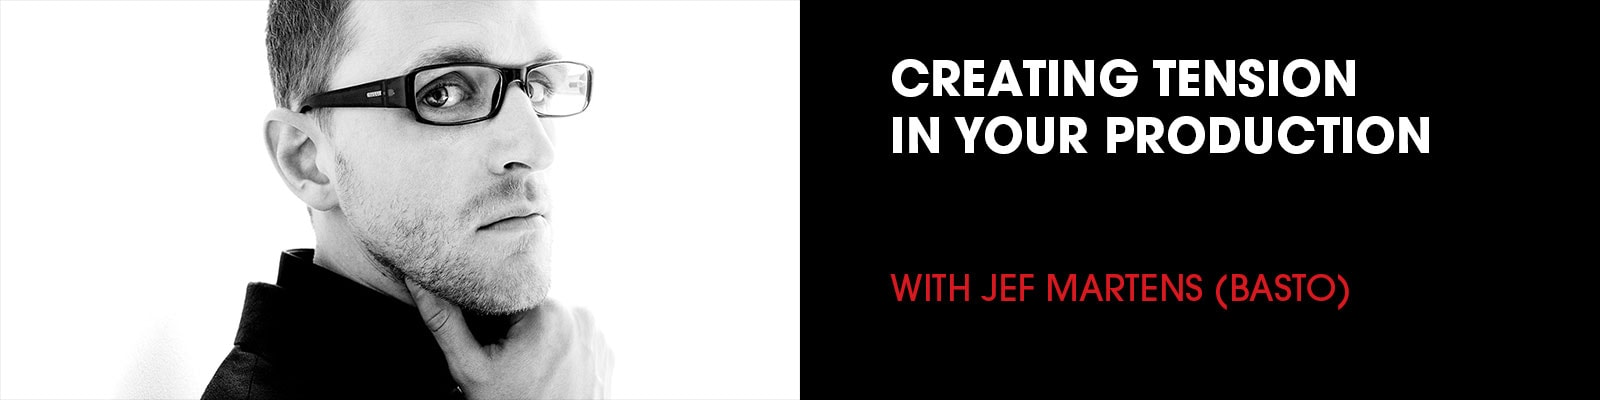 create tension in your production workshop with jef martens